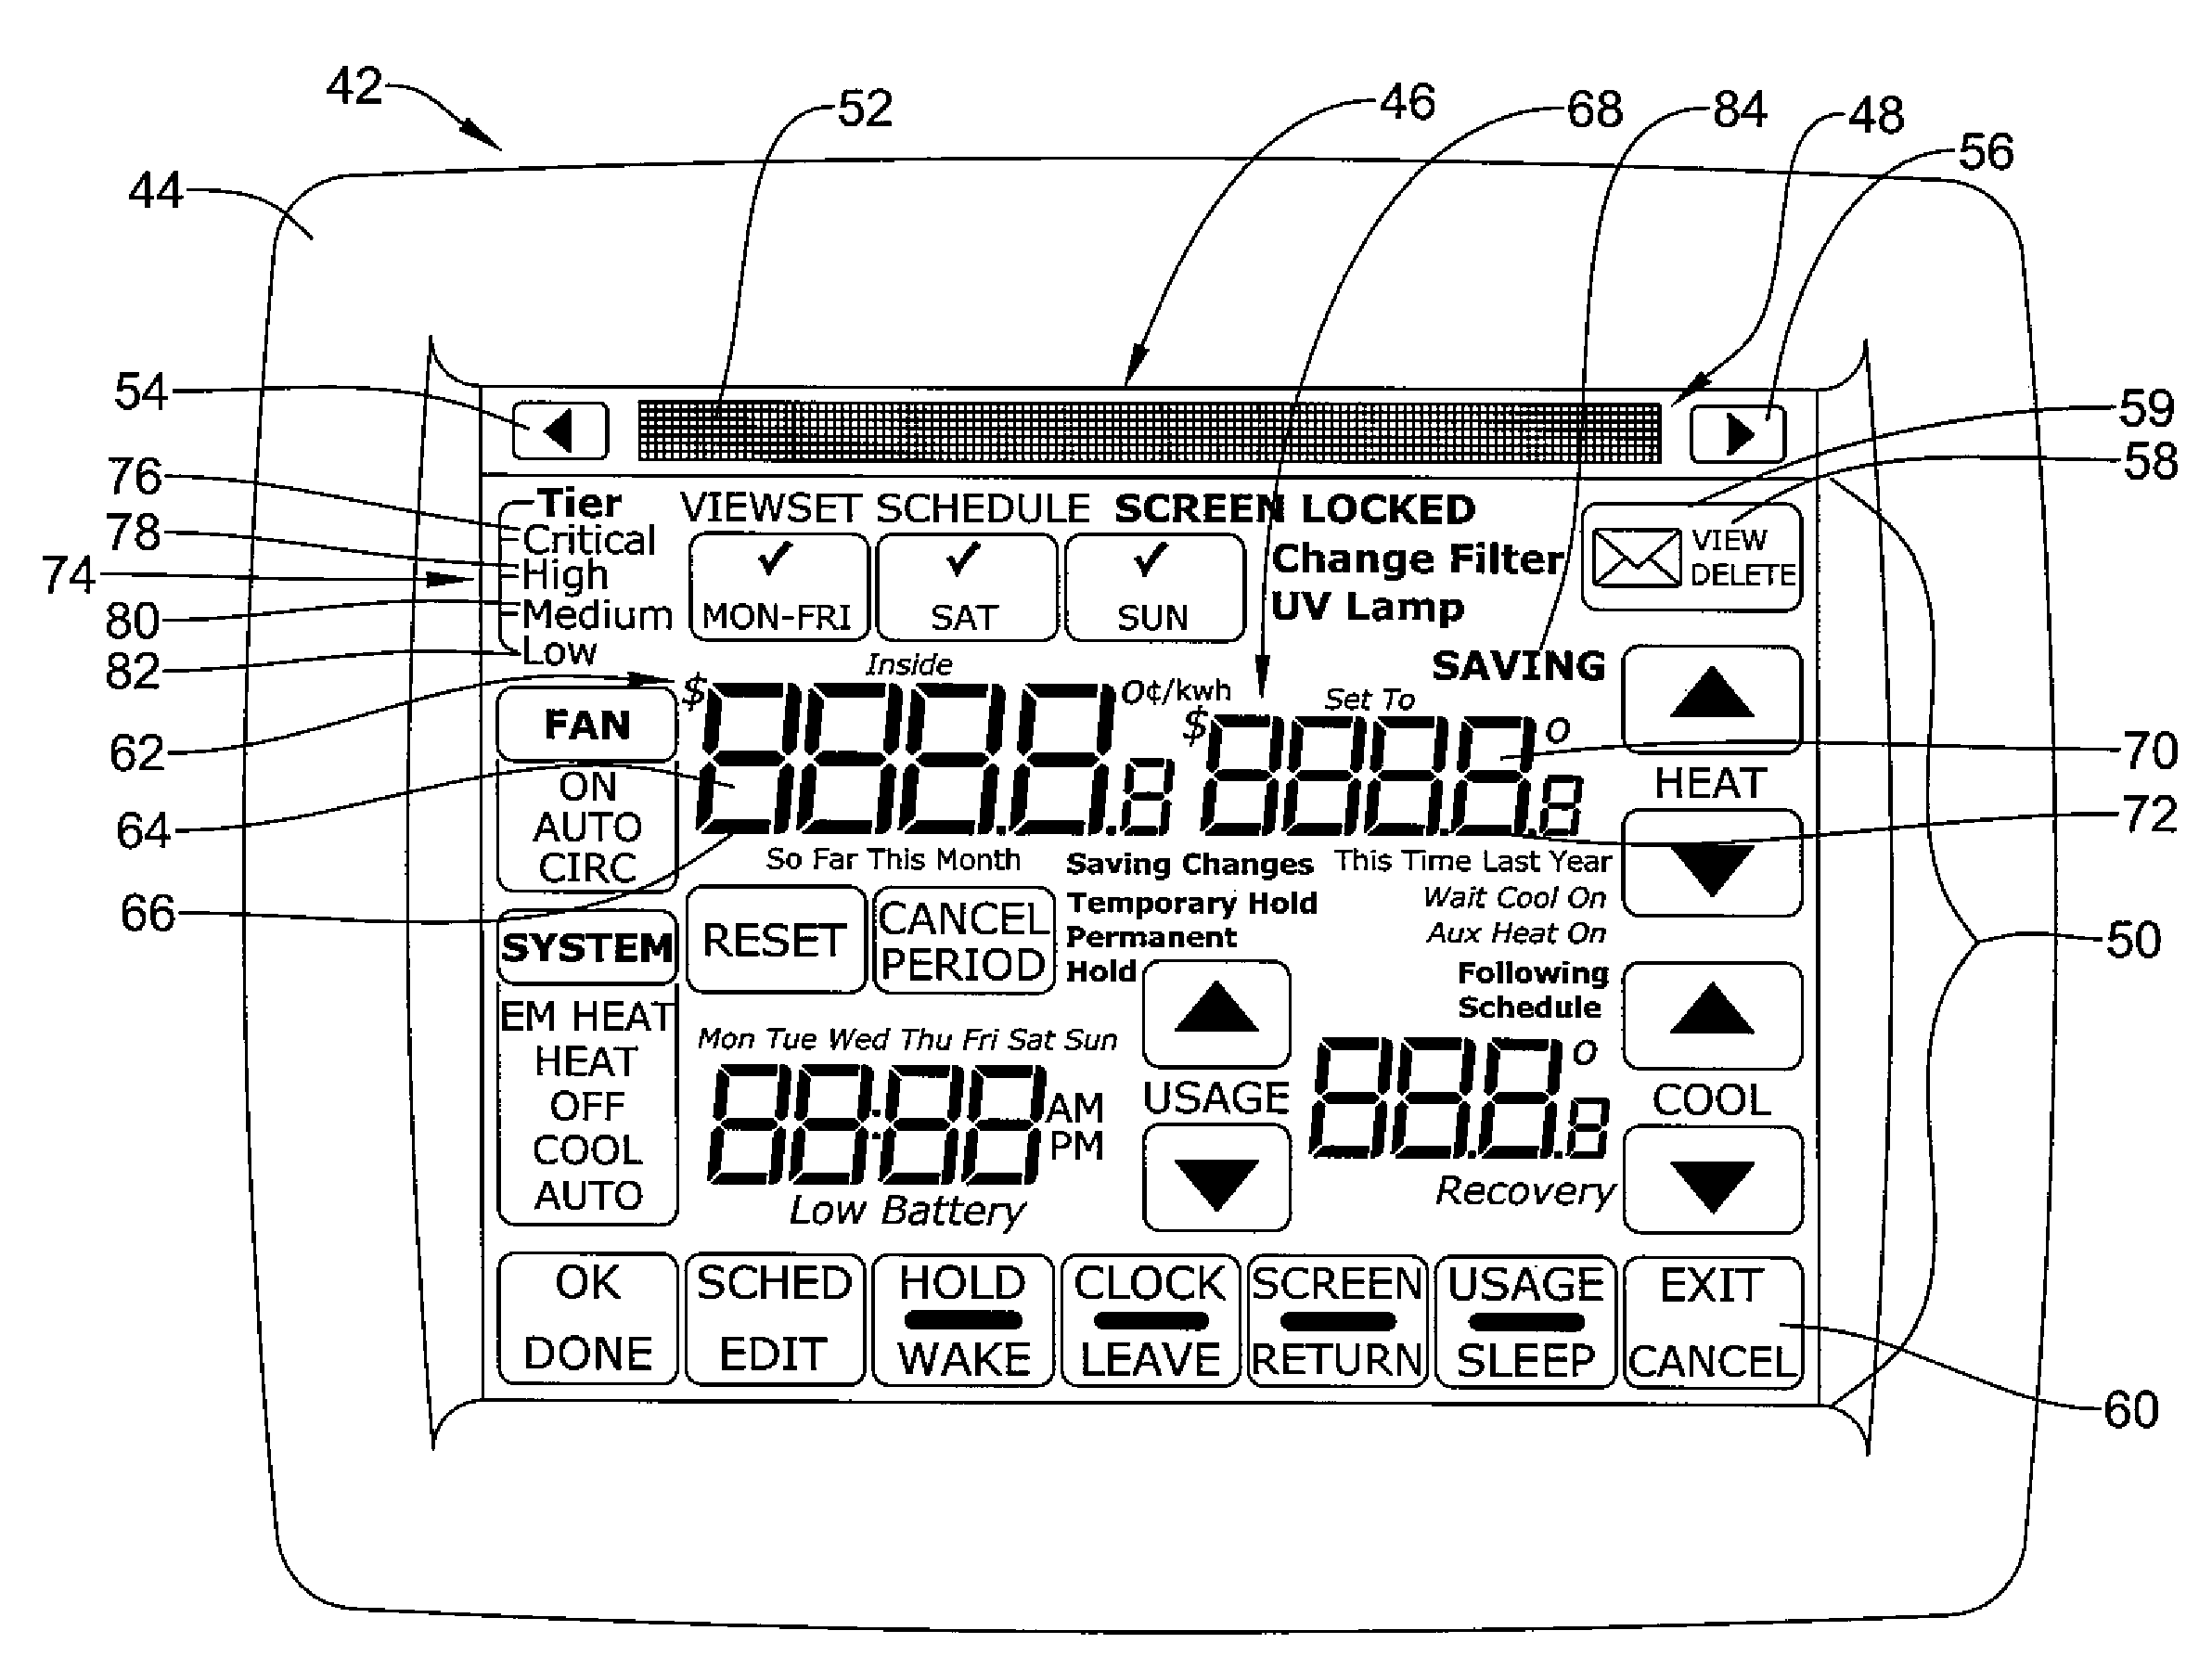 US07845576 20101207 D00000 patent us7845576 thermostat with fixed segment display having honeywell utility pro thermostat wiring diagram at gsmx.co